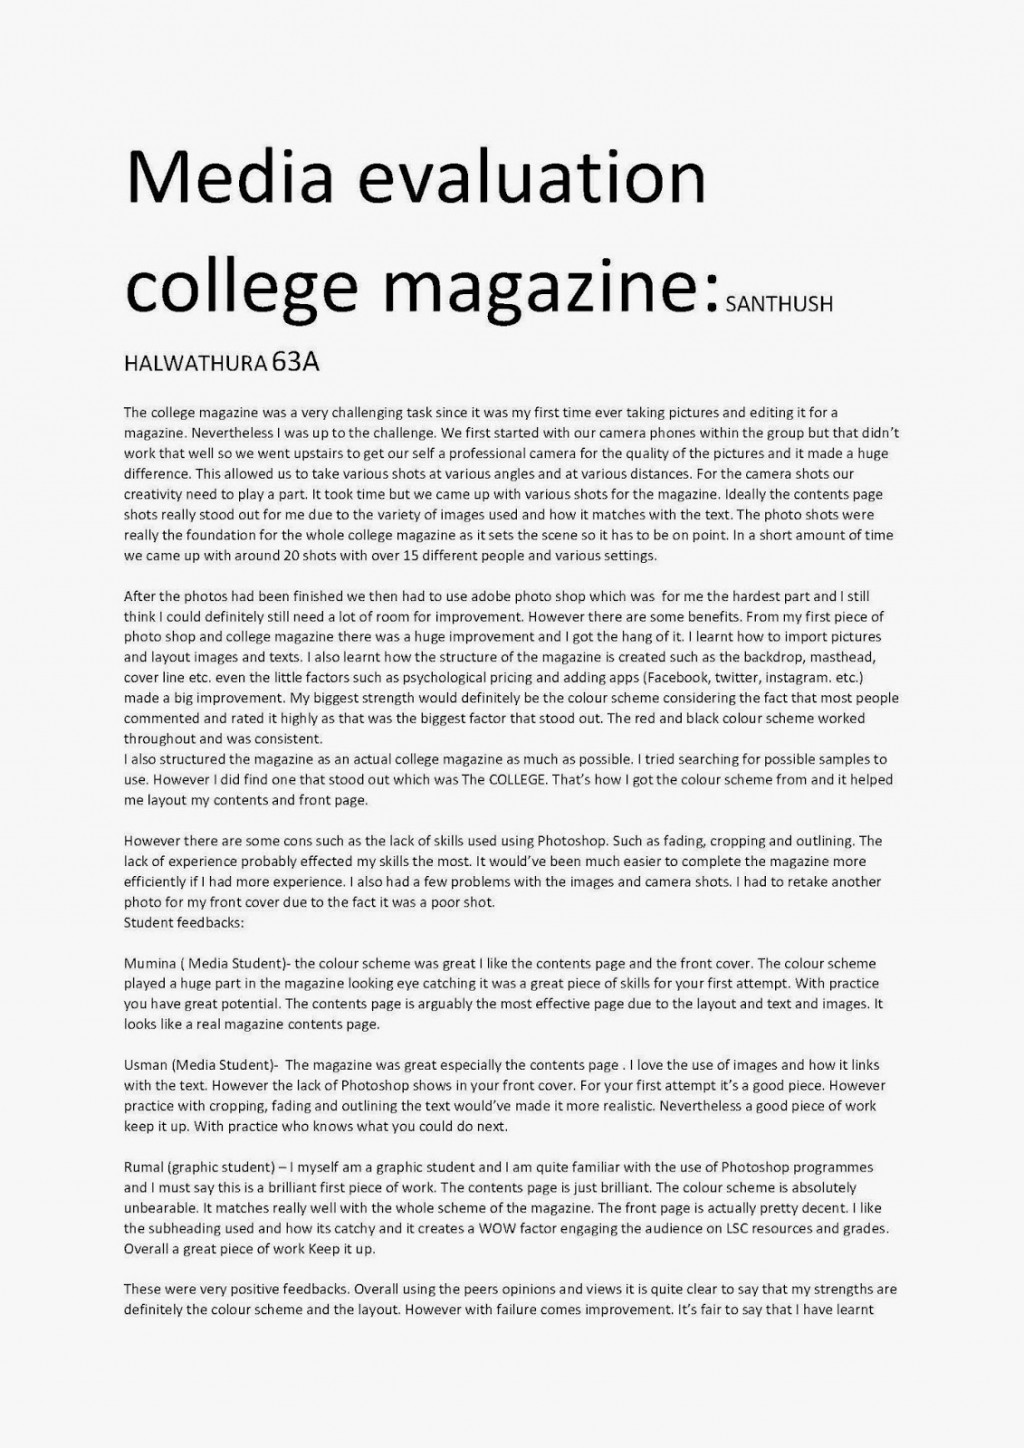 016 Mediaevaluationcollegemagazine Page 1 Evaluation Essay Amazing Example Topic Critical Psychology Restaurant Large